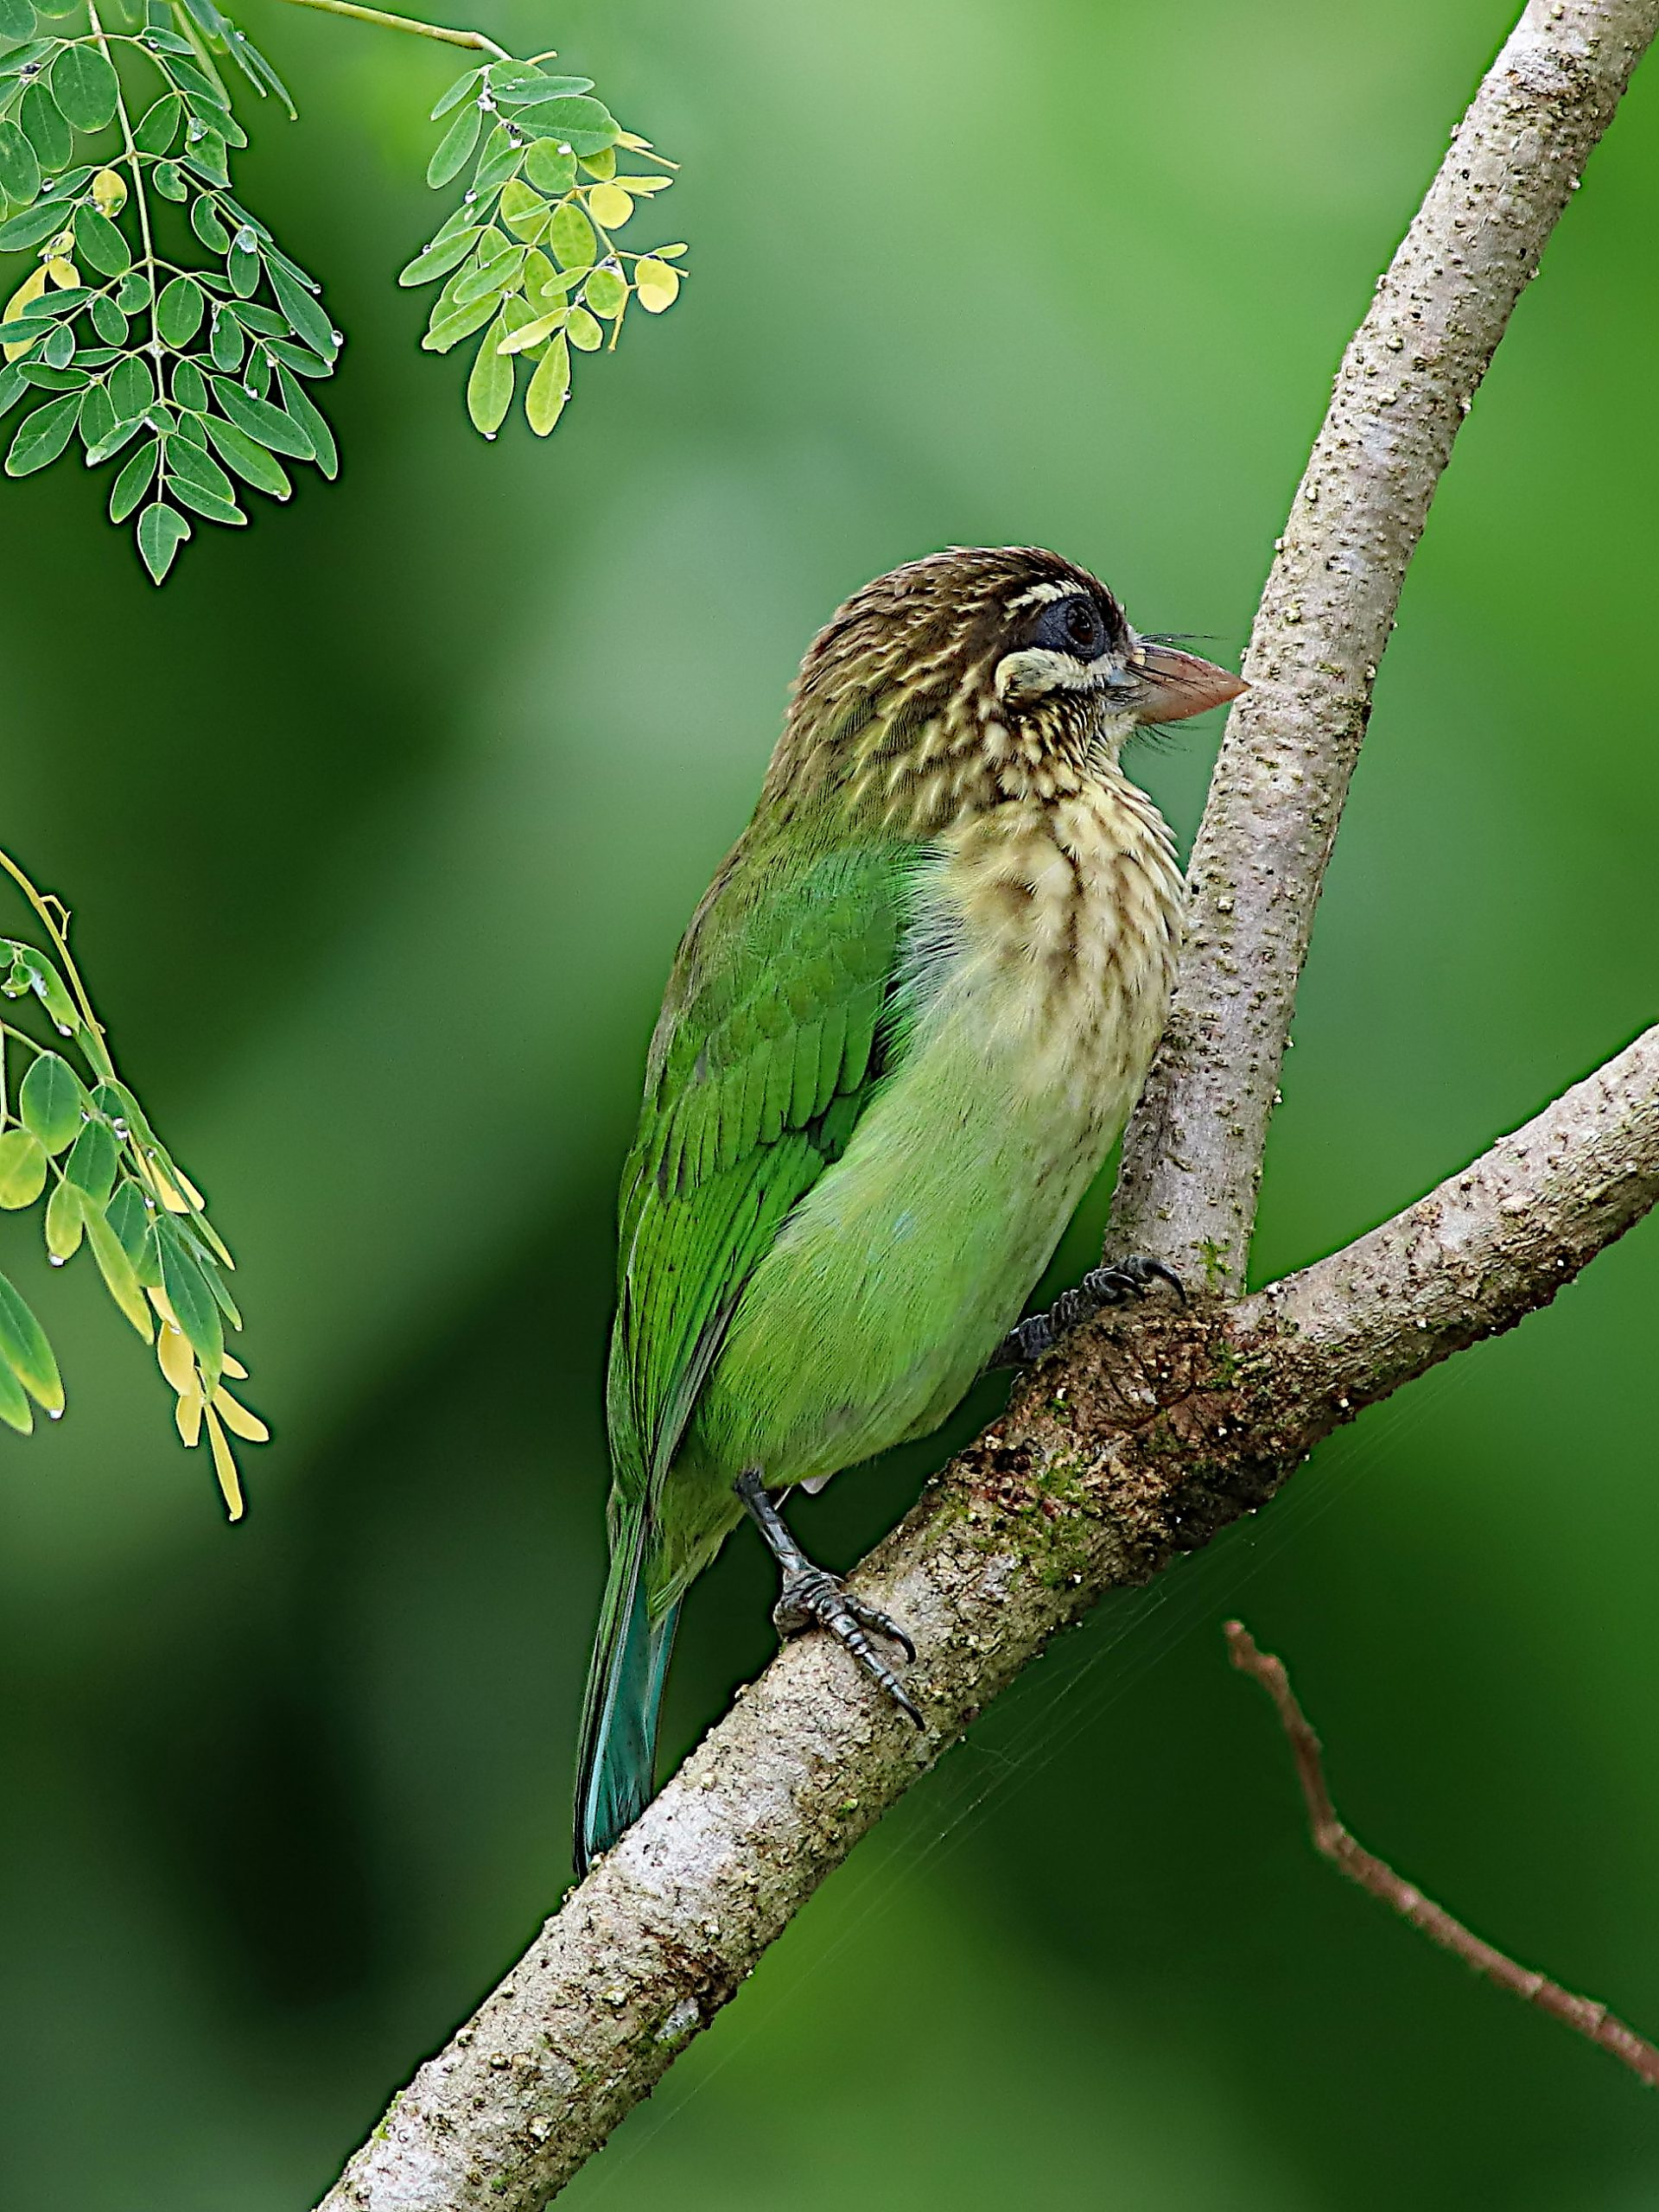 A barbet on a branch